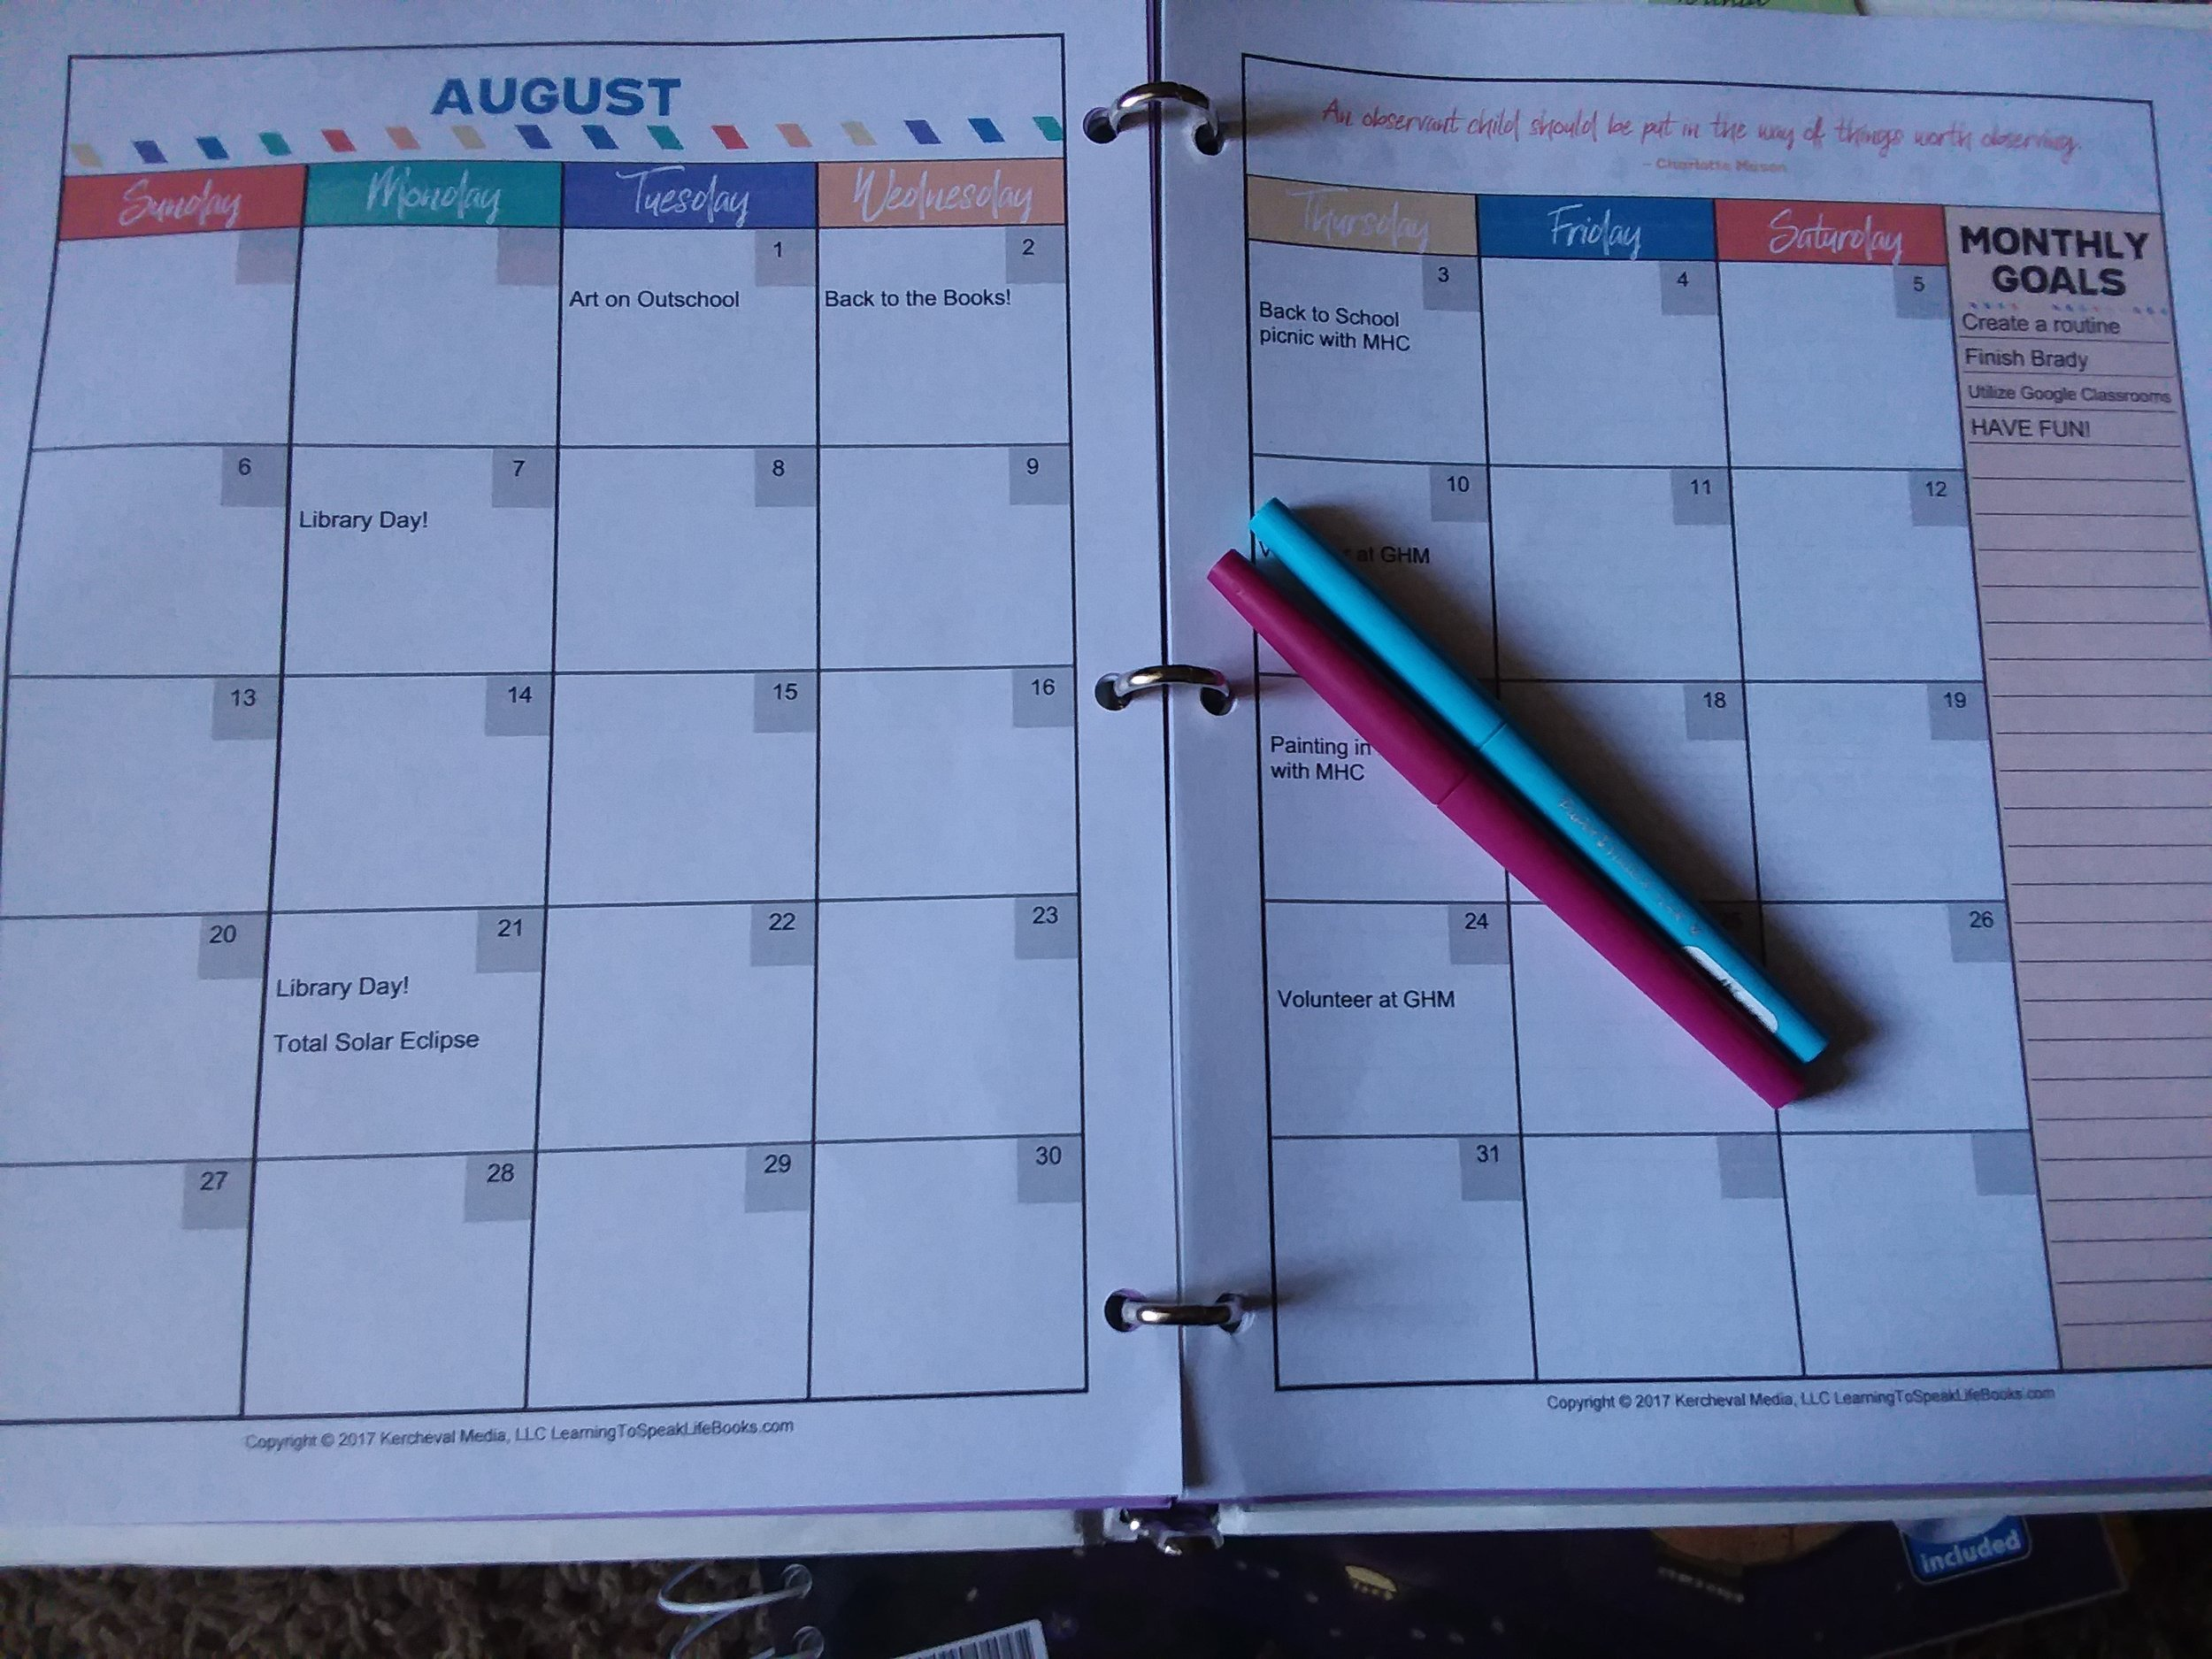 montly laout in the organized homeschool planner